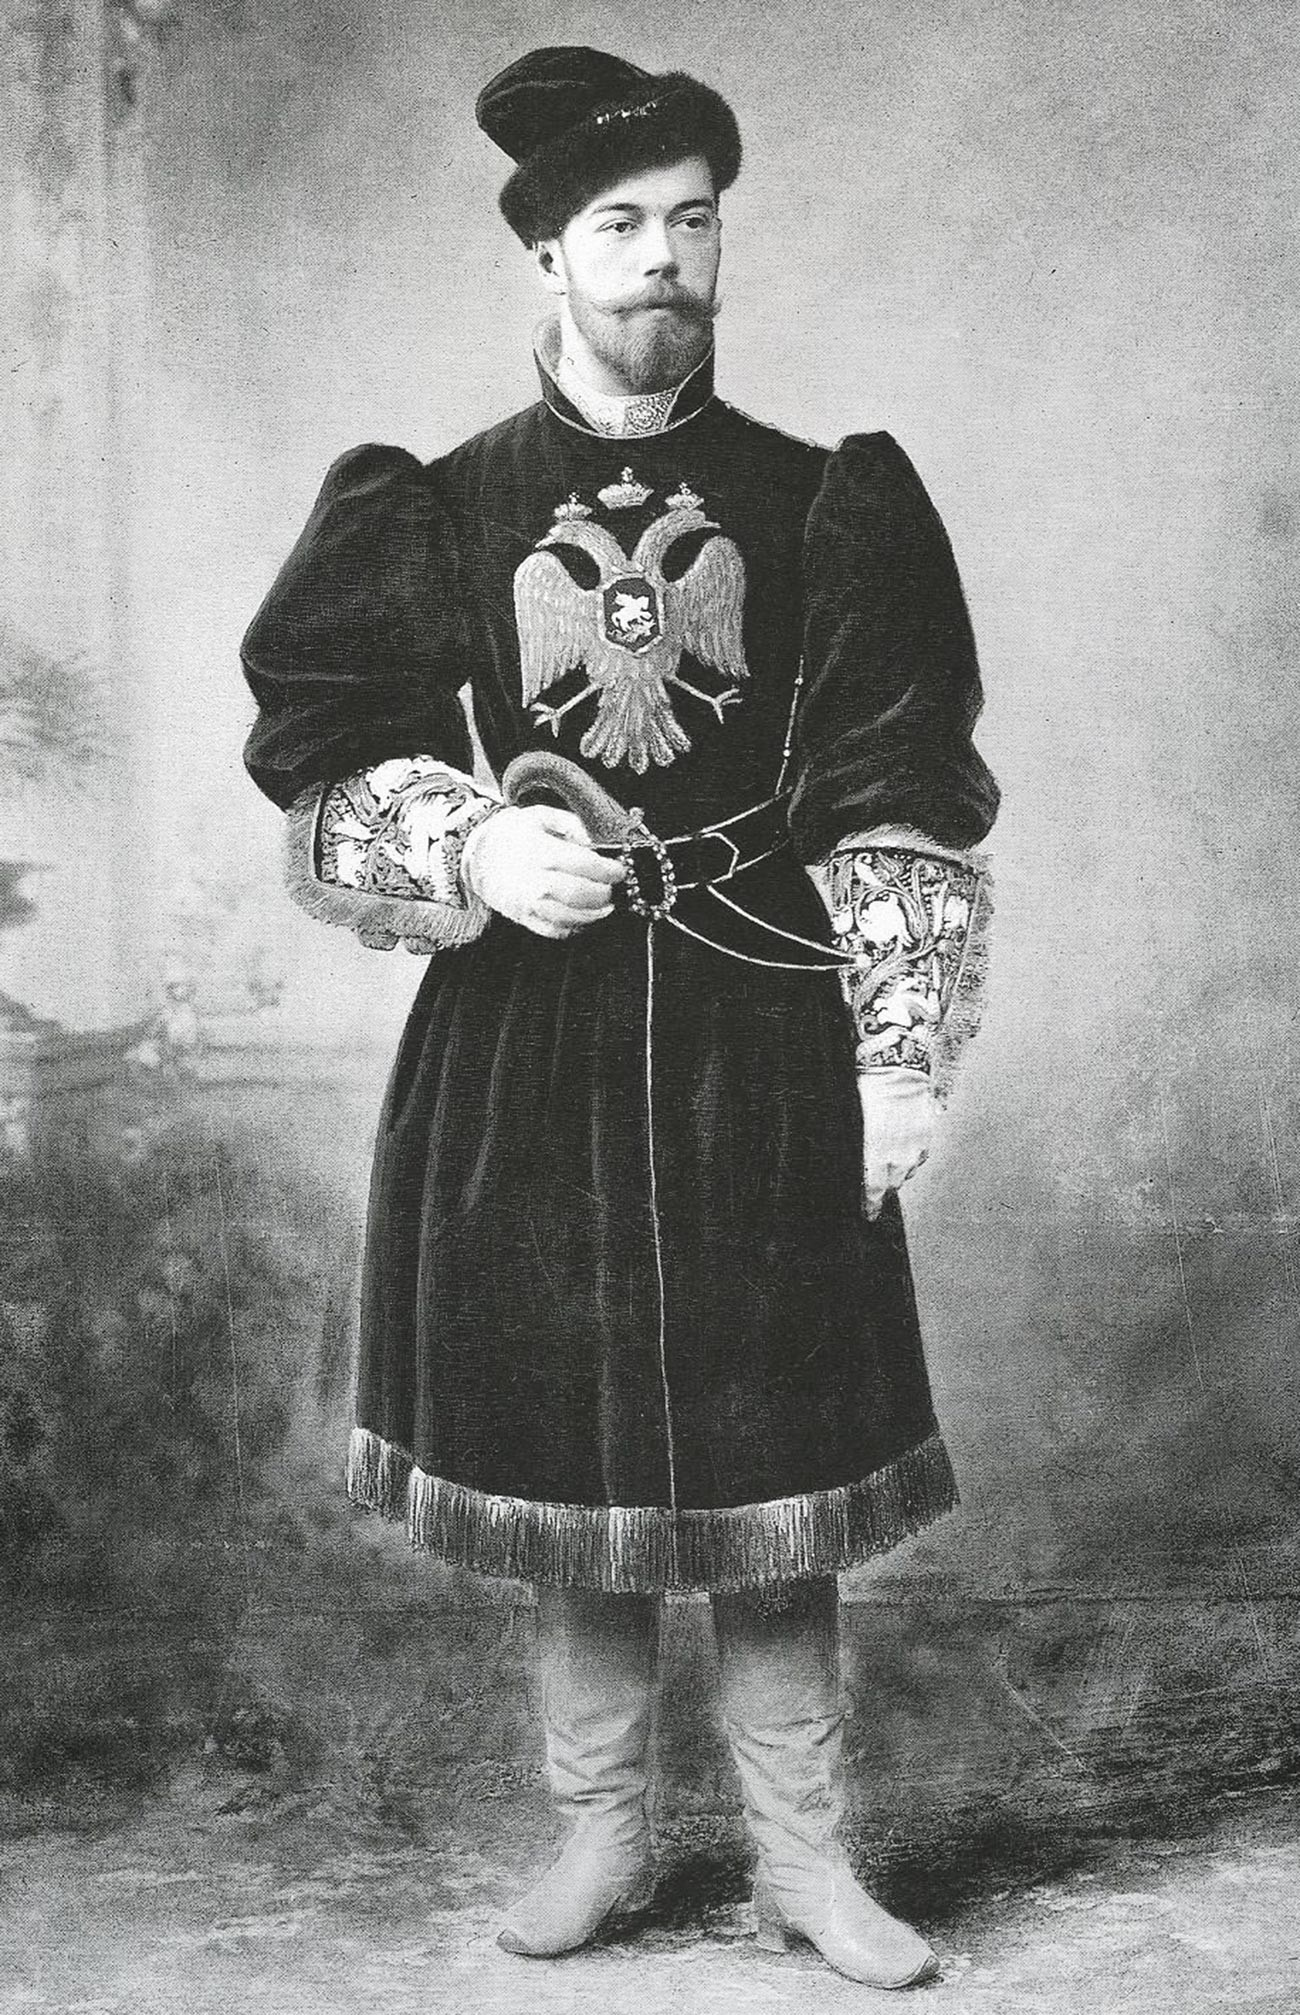 Nicholas II in 1913, wearing a traditional costume of Russian Grand Princes of the 17th century